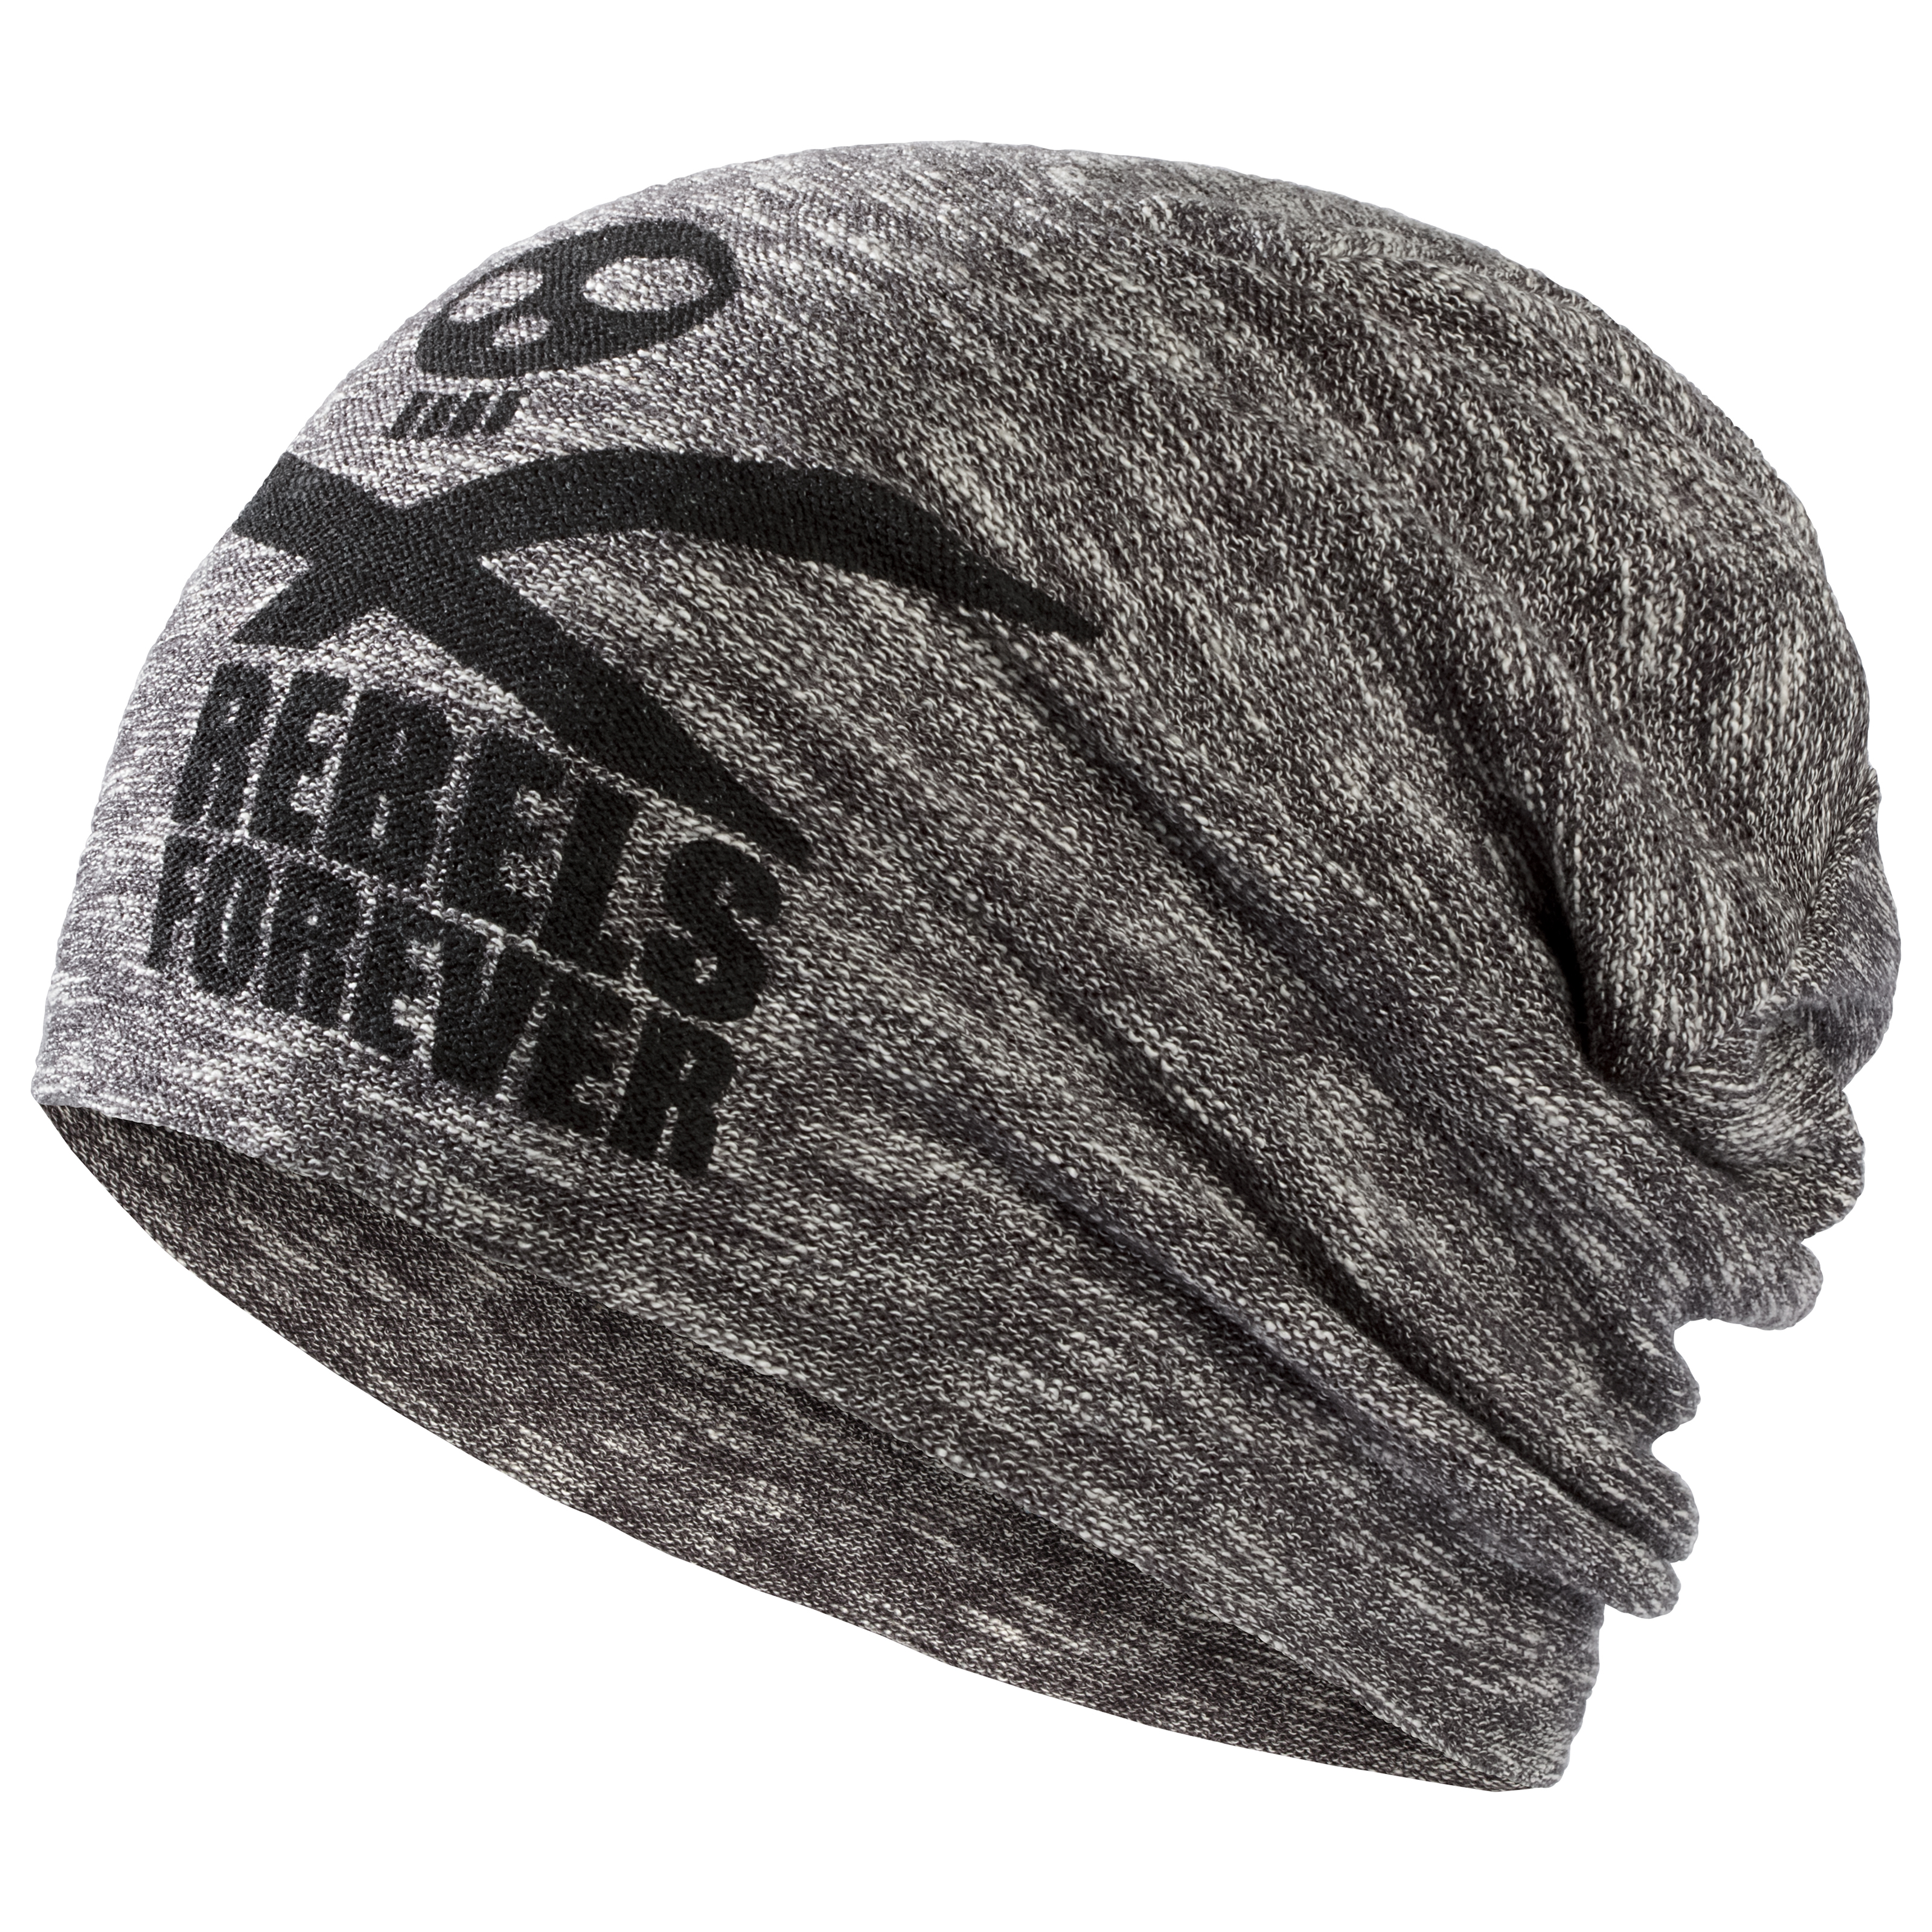 HEAD RACE BEANIE - ( AN) - 2020